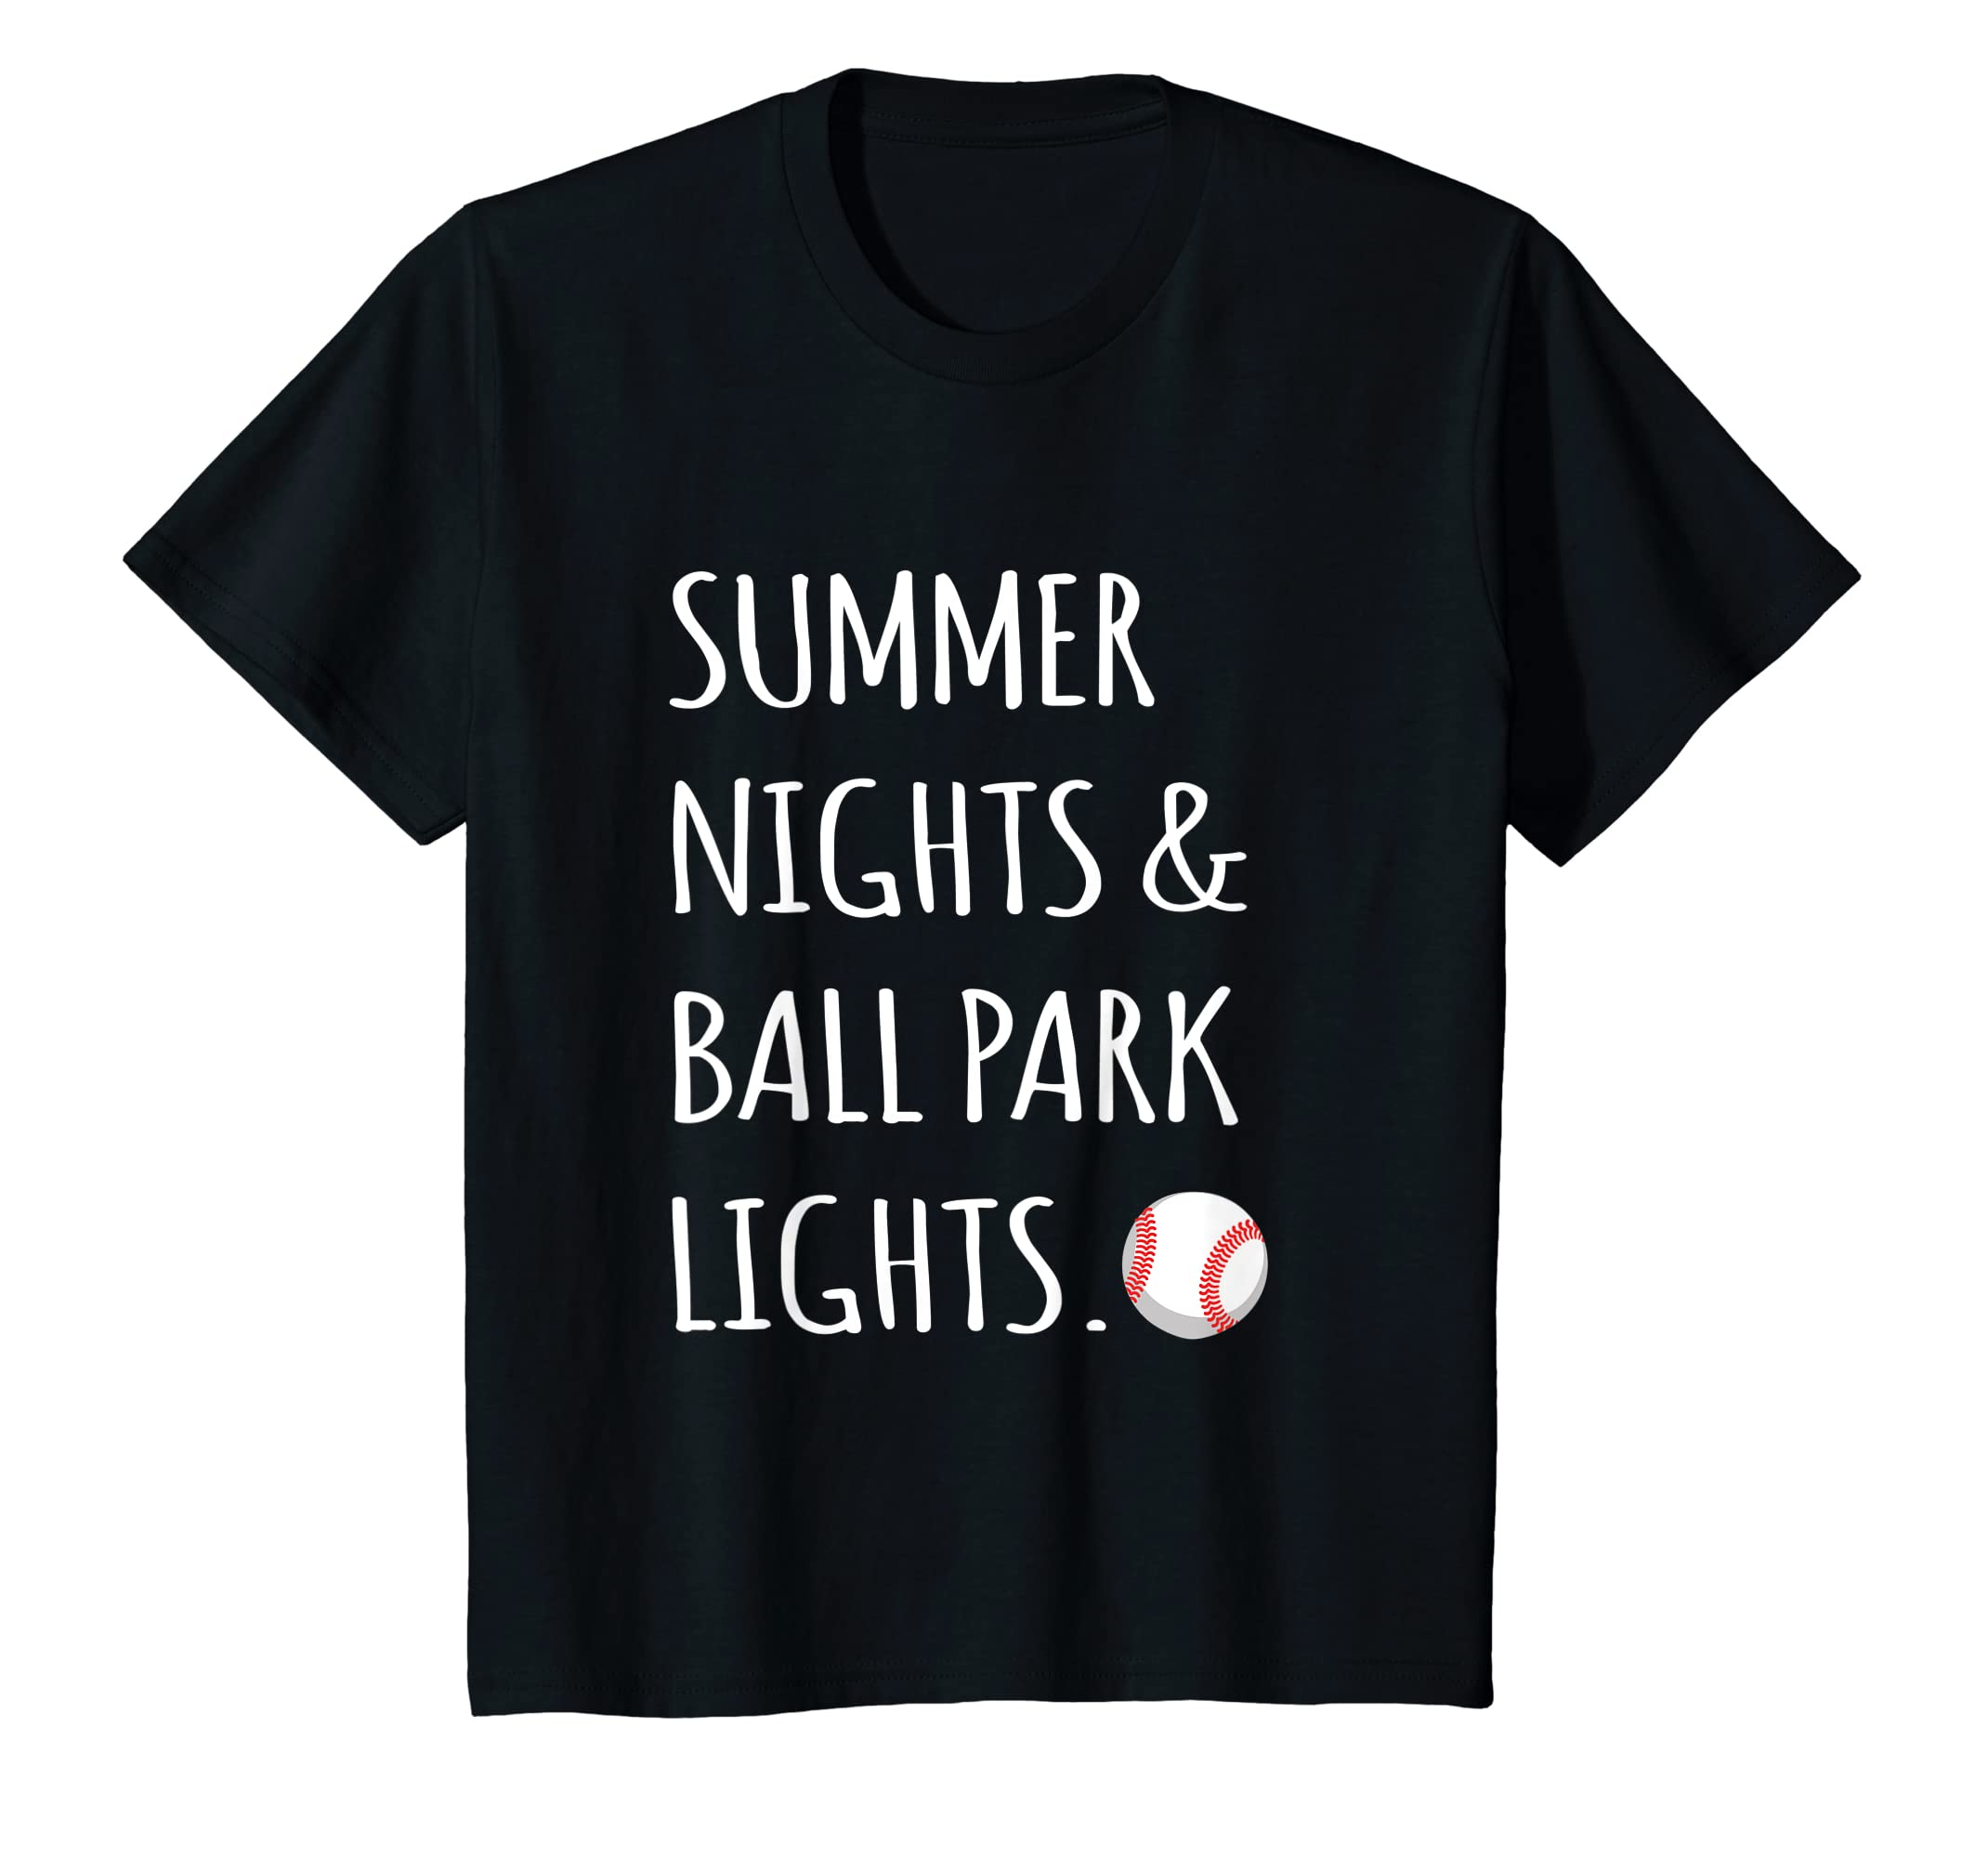 8f4f6af488f2 Amazon.com  Summer nights and ballpark lights - Youth baseball t shirt   Clothing